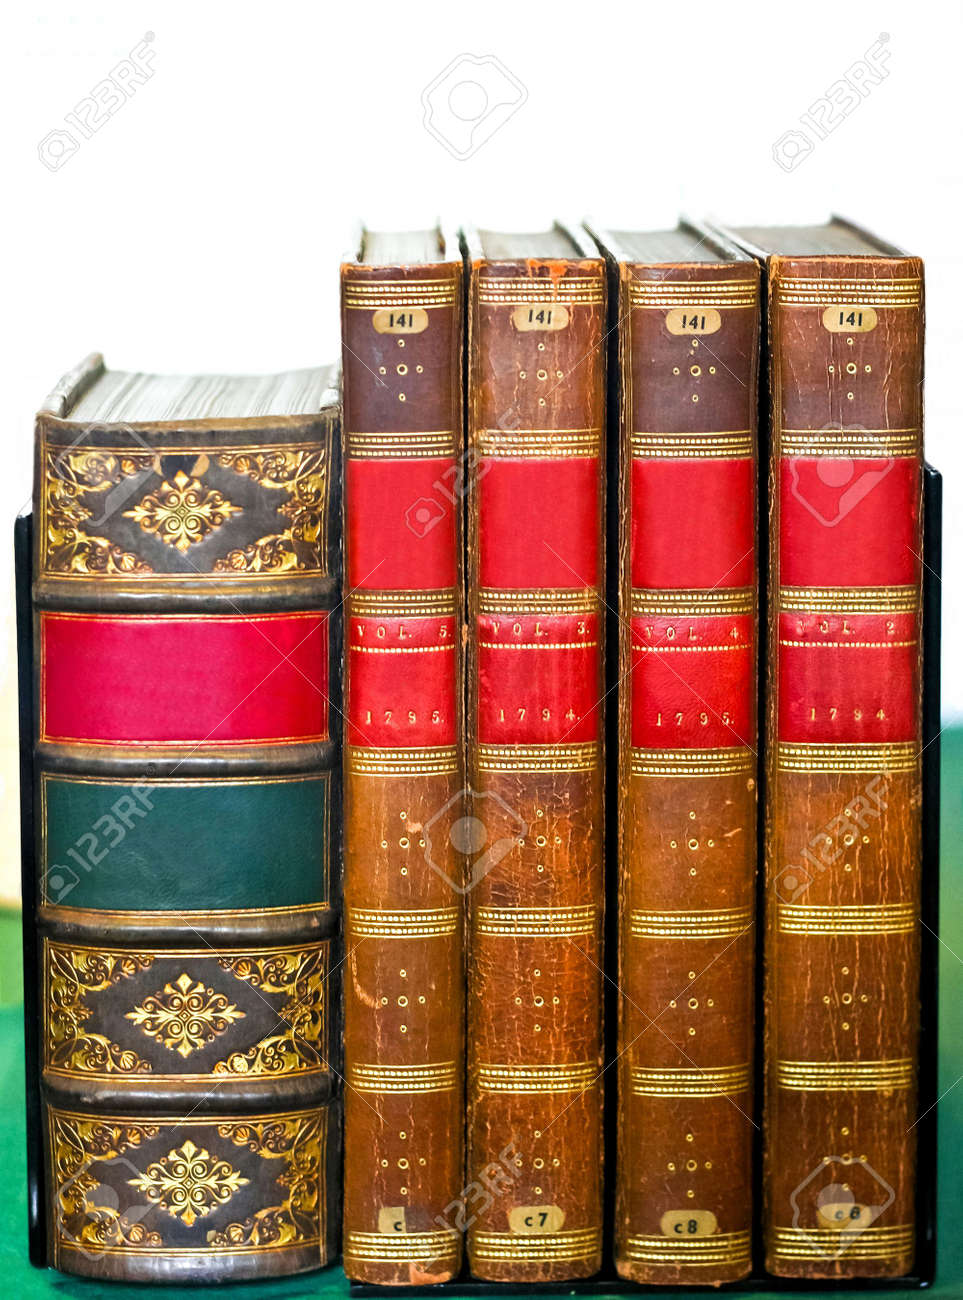 Very old medieval books at library shelf Stock Photo - 7475065